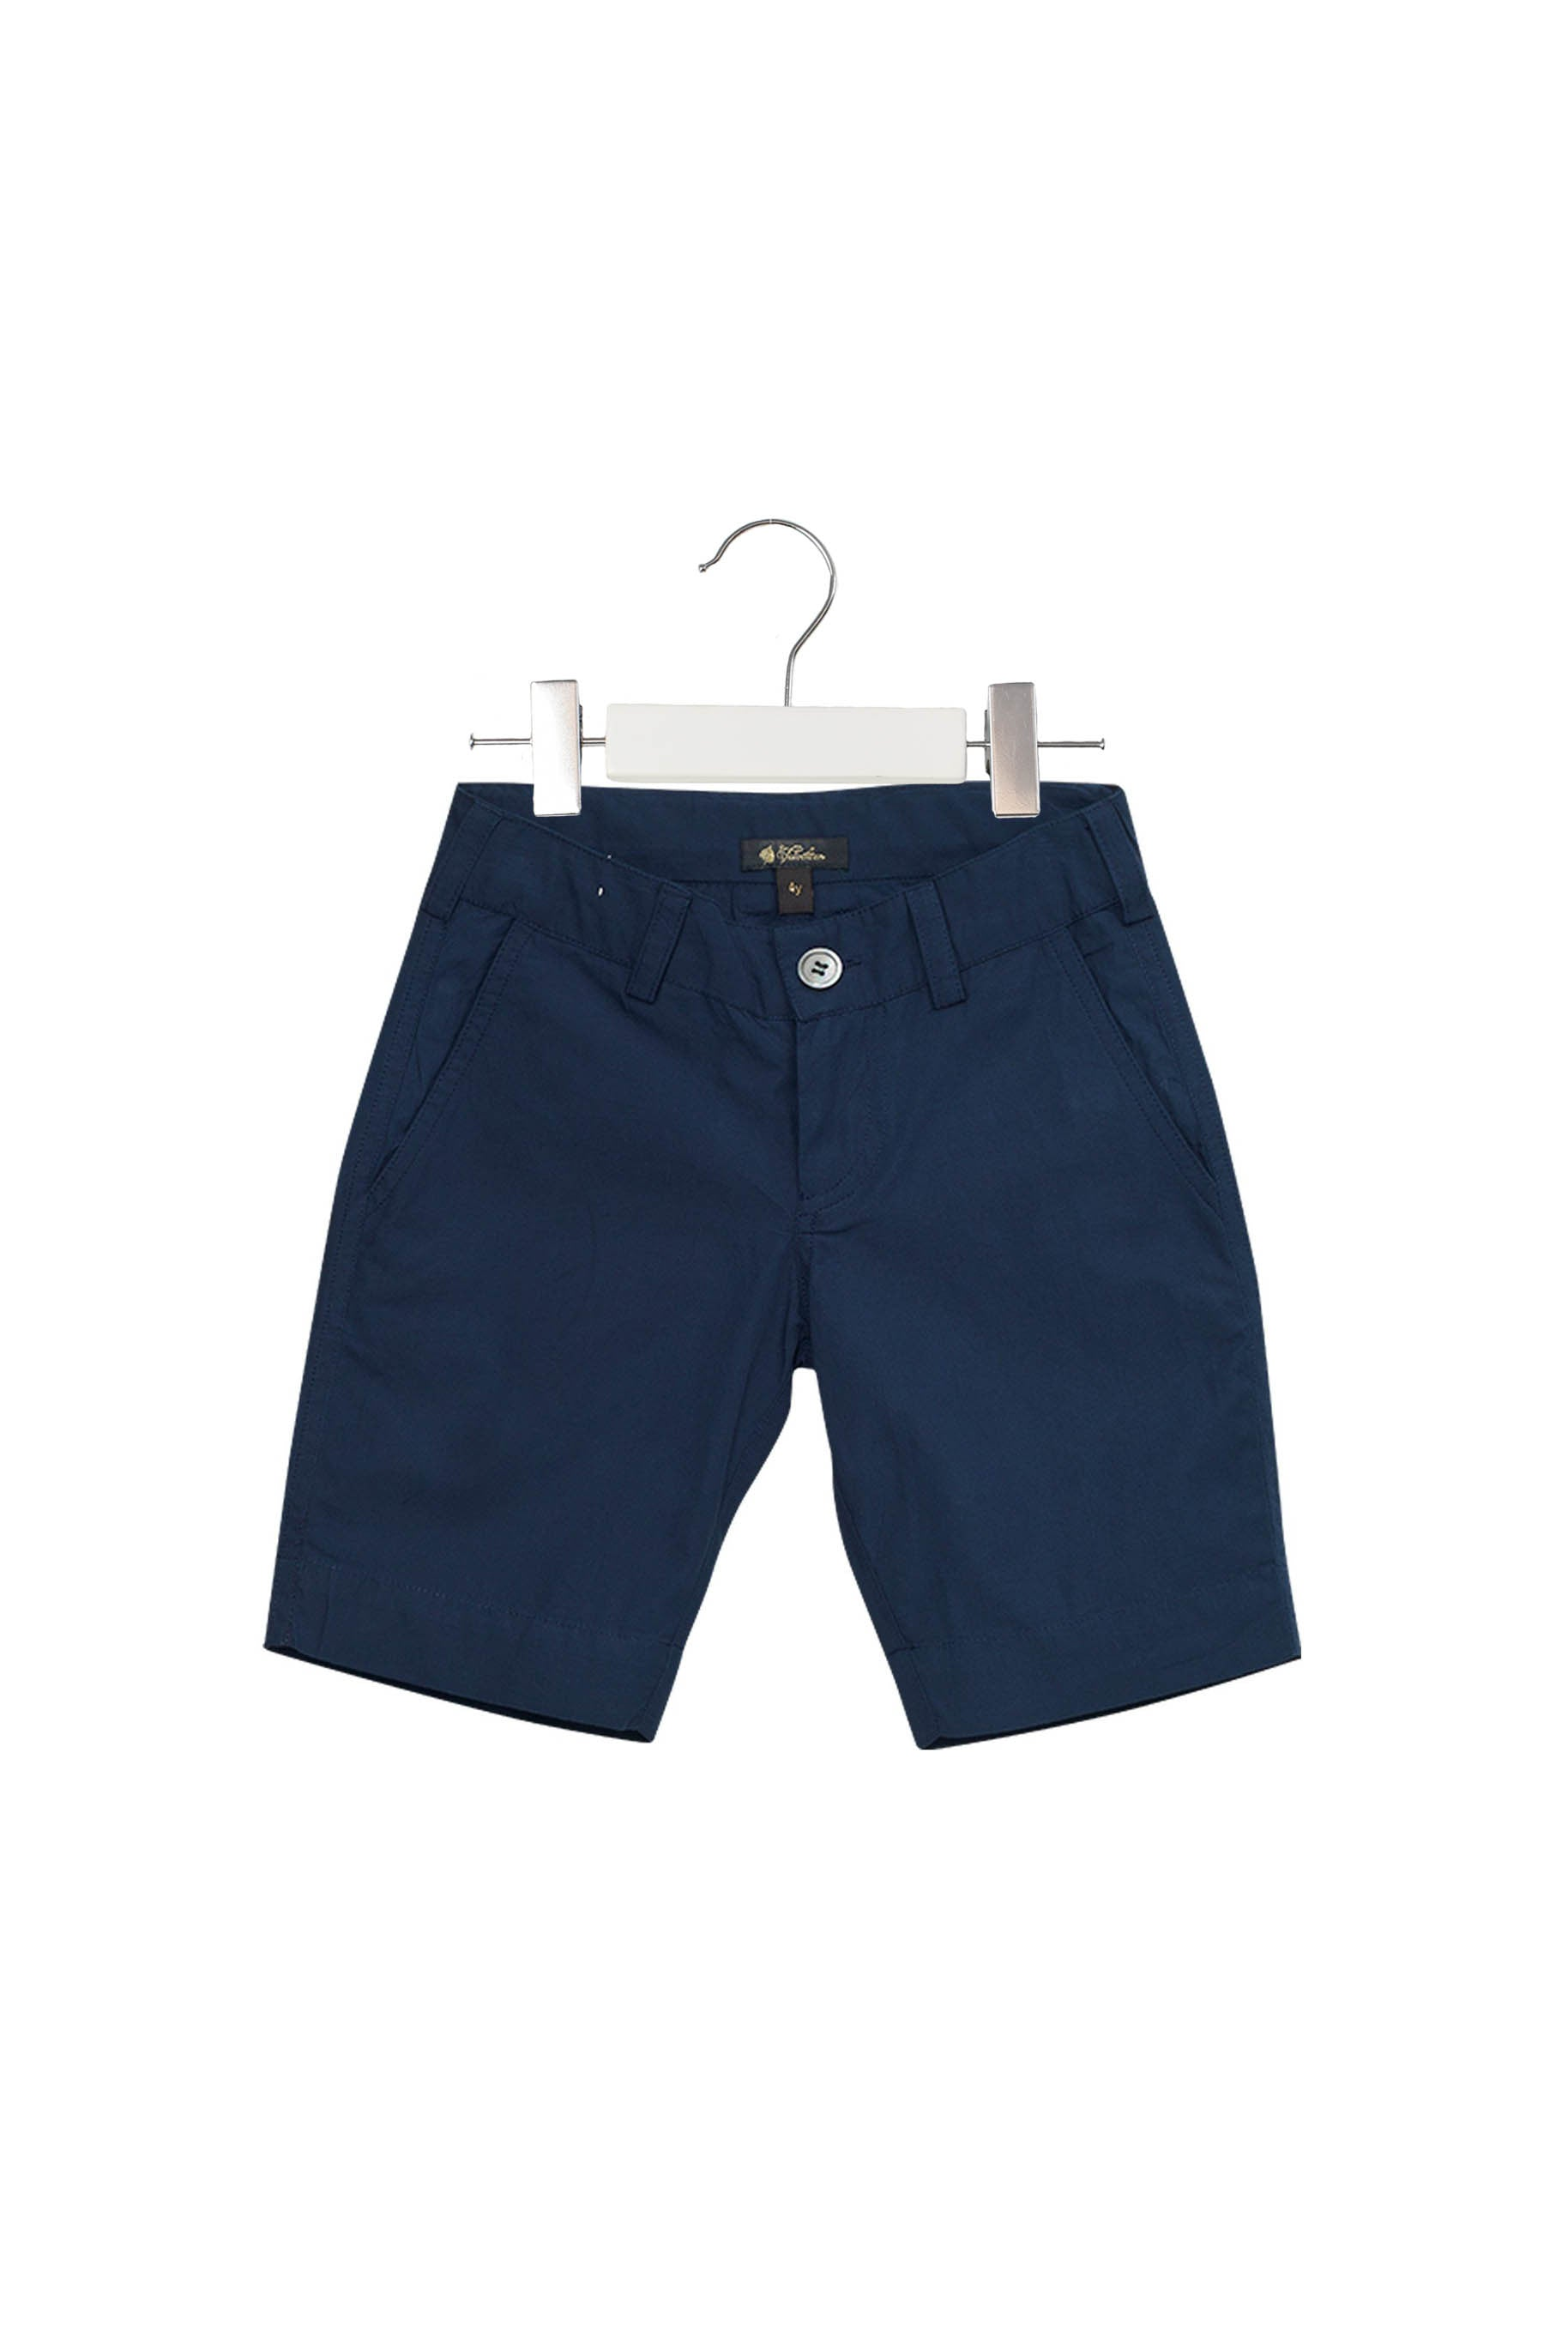 10004073 Velveteen Kids~Shorts 12M-4T, Velveteen Retykle | Online Baby & Kids Clothing Hong Kong